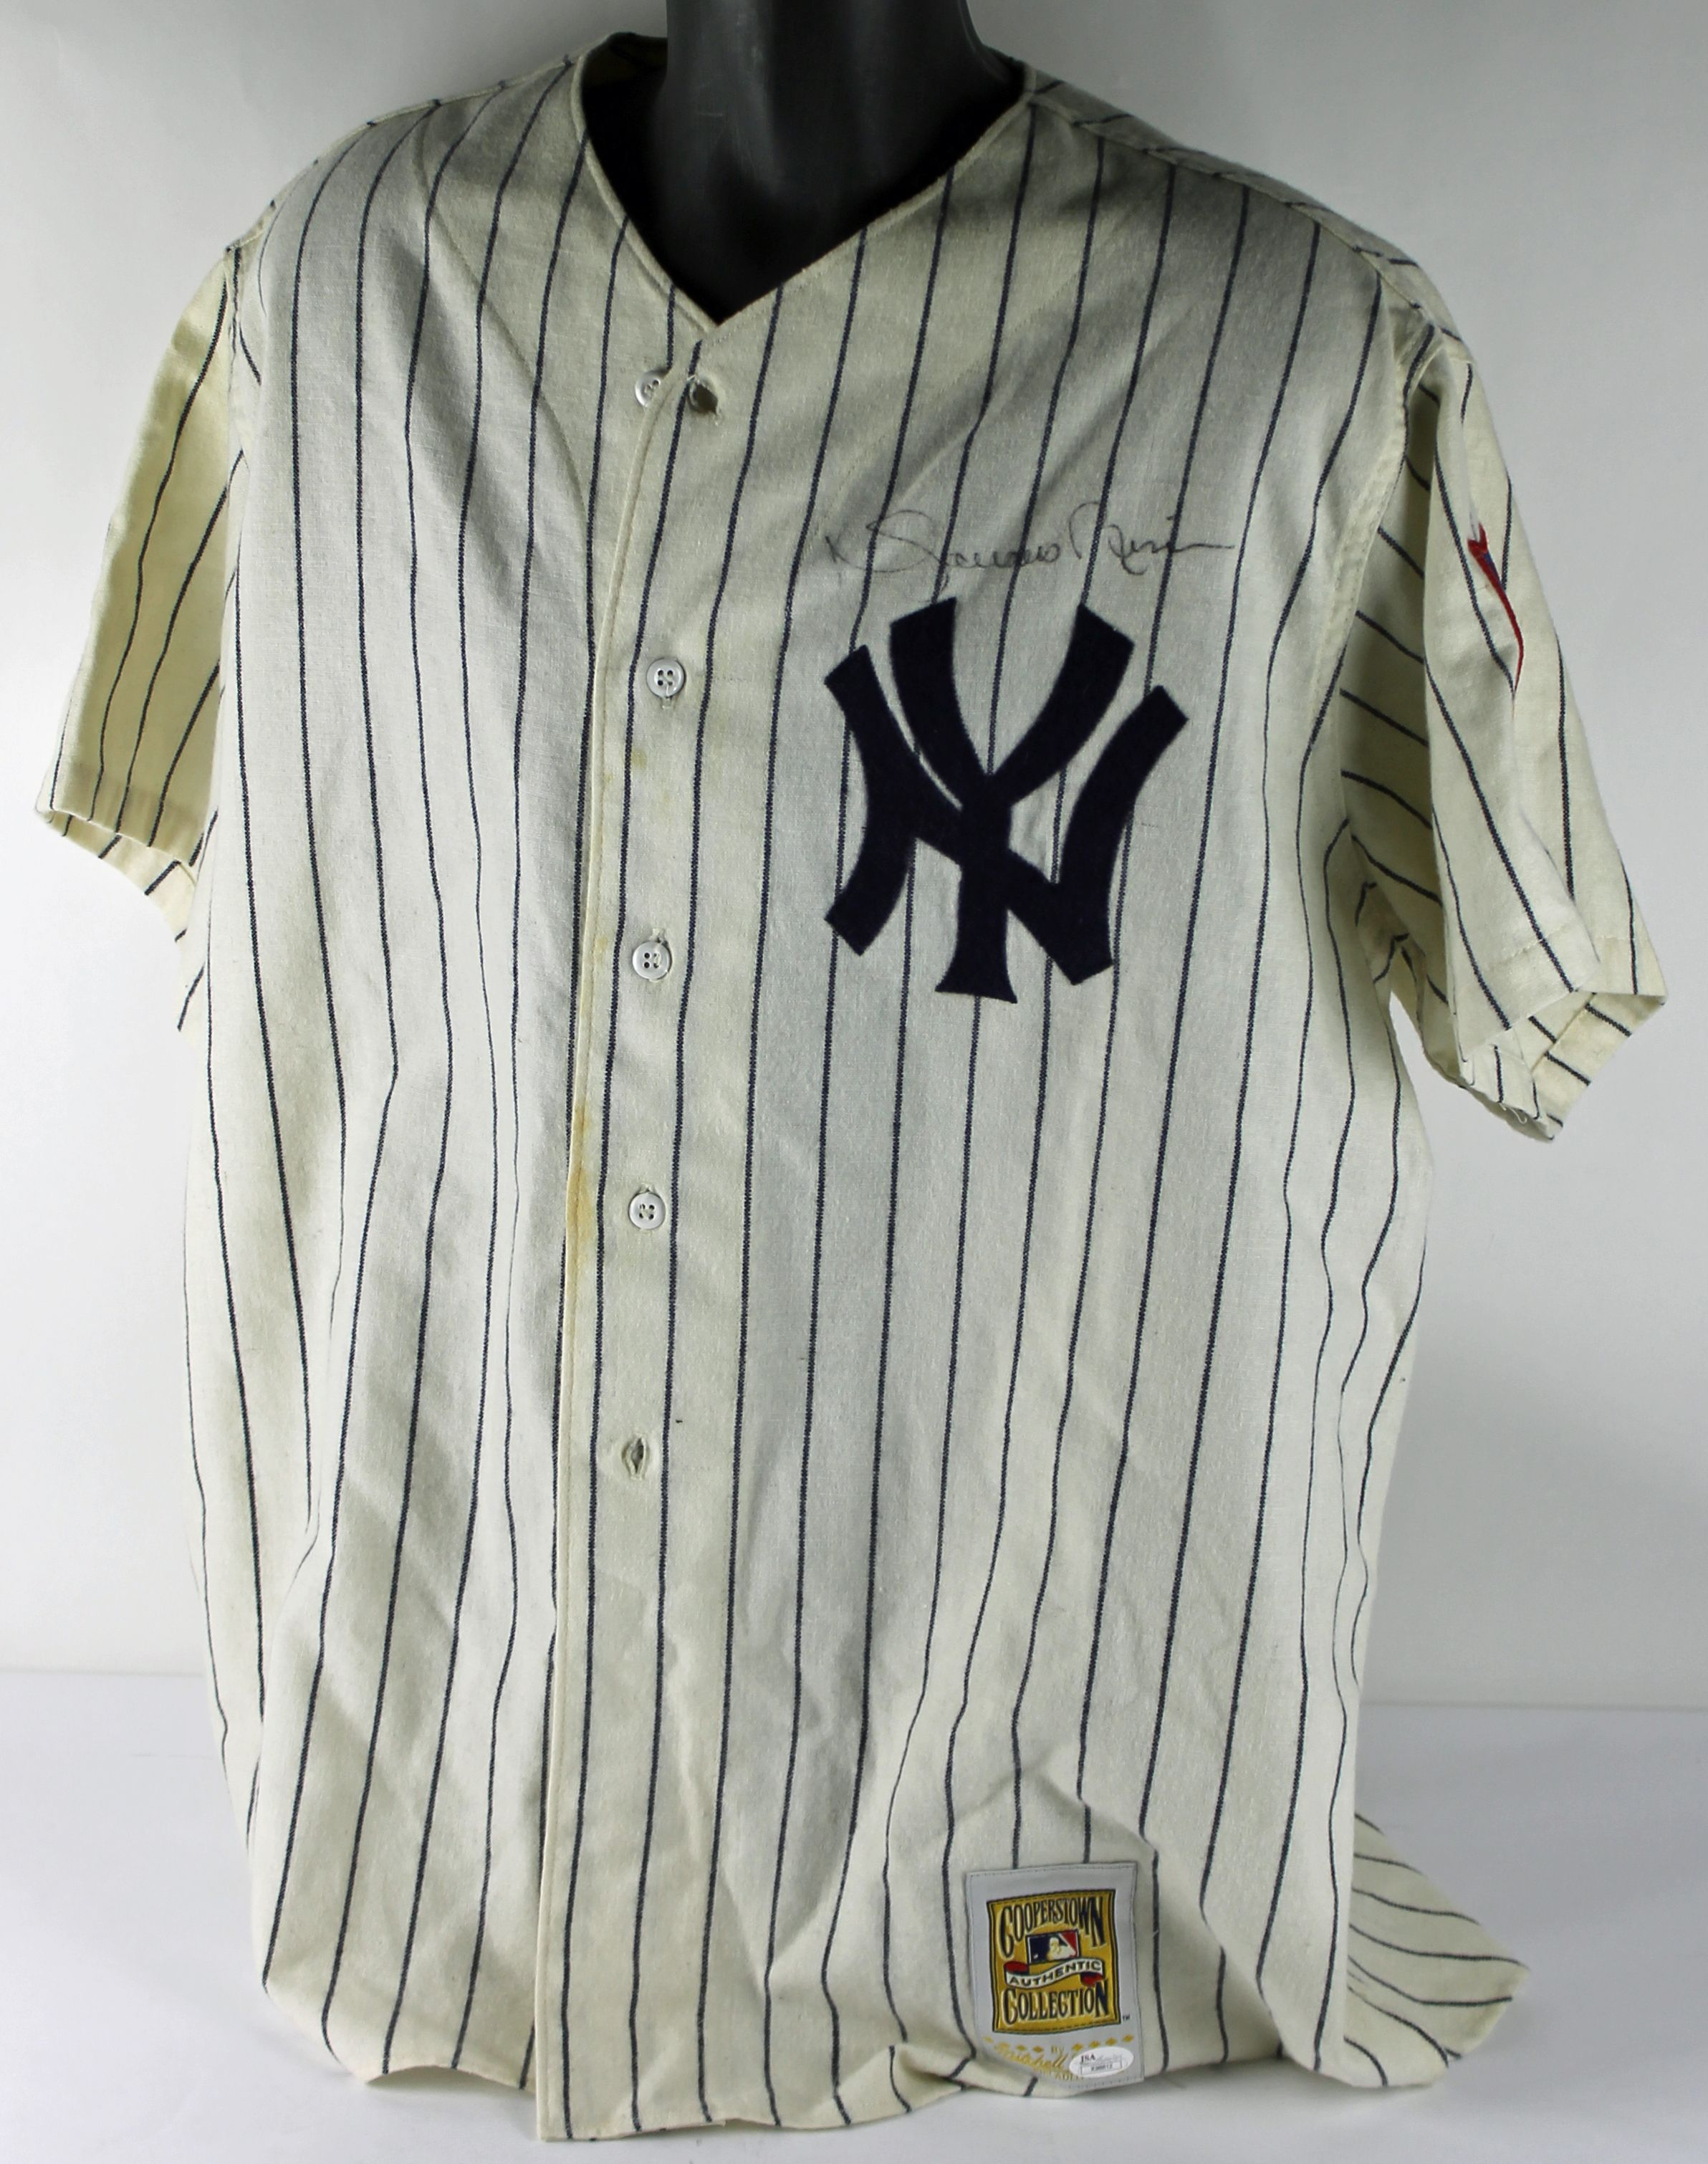 finest selection f010f 1413b Lot Detail - Rare Mariano Rivera Signed Mitchell & Ness 1951 ...